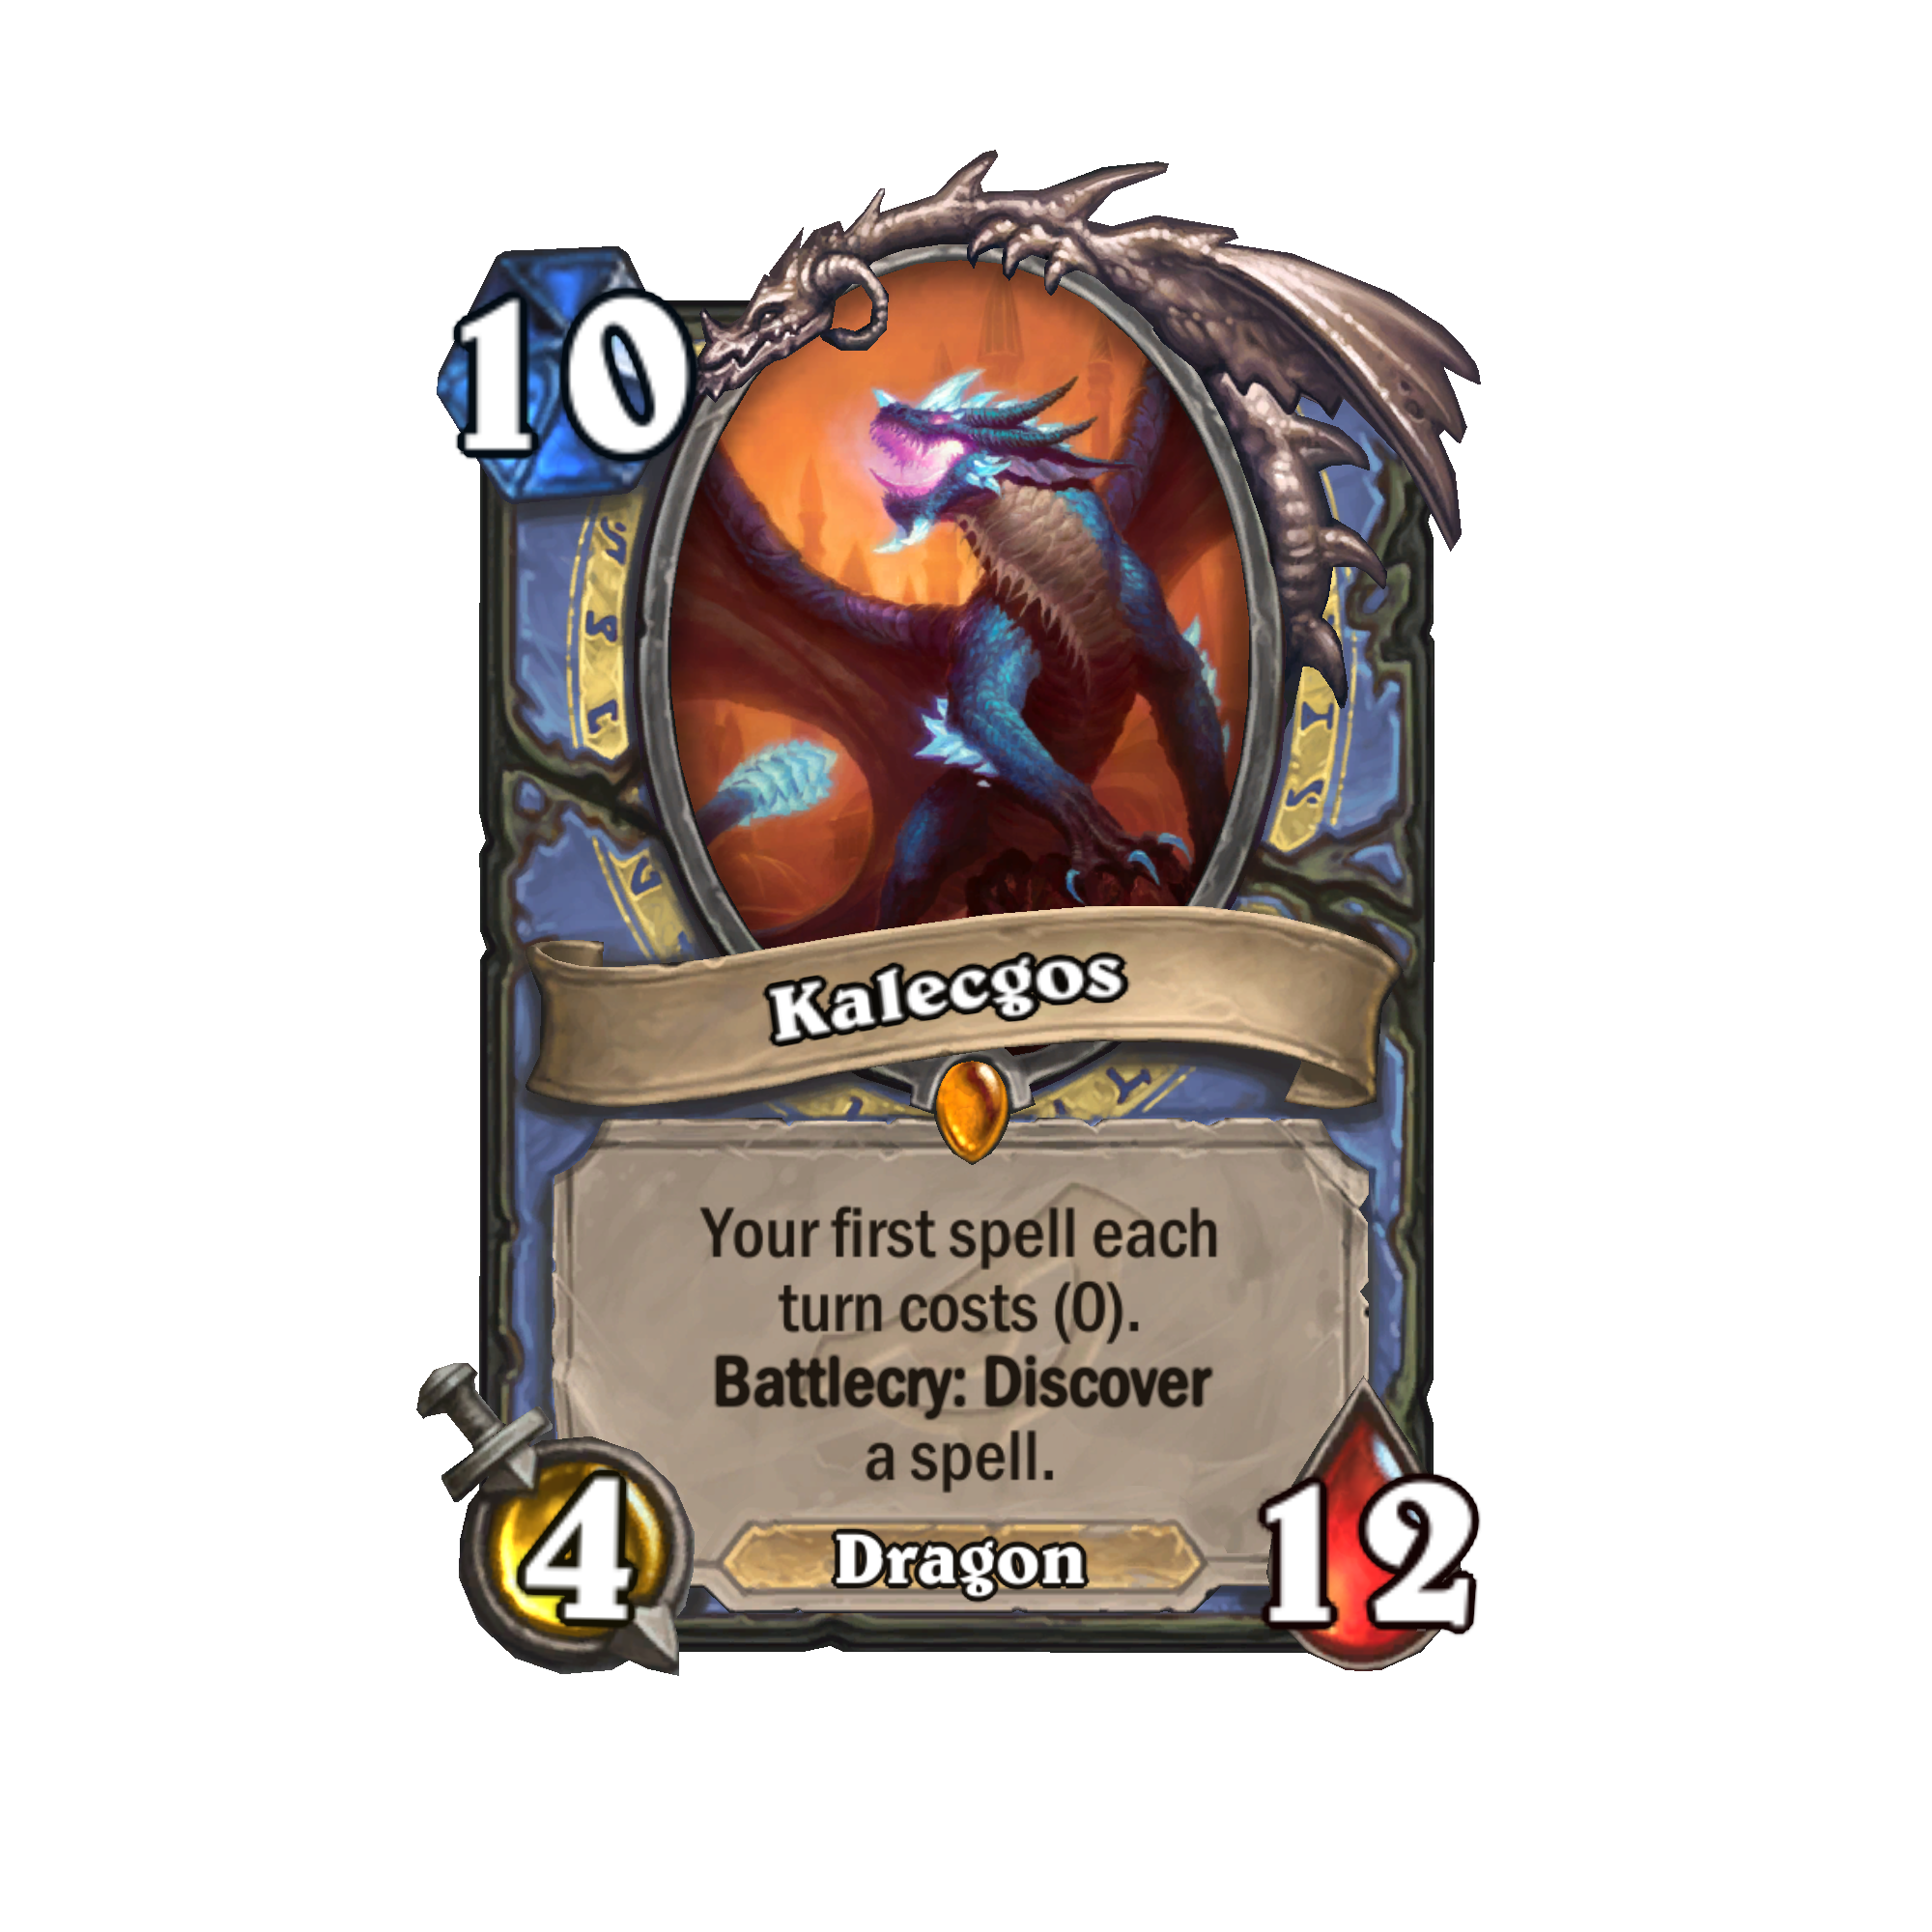 kalecgos hearthstone rise of the shadows expansion